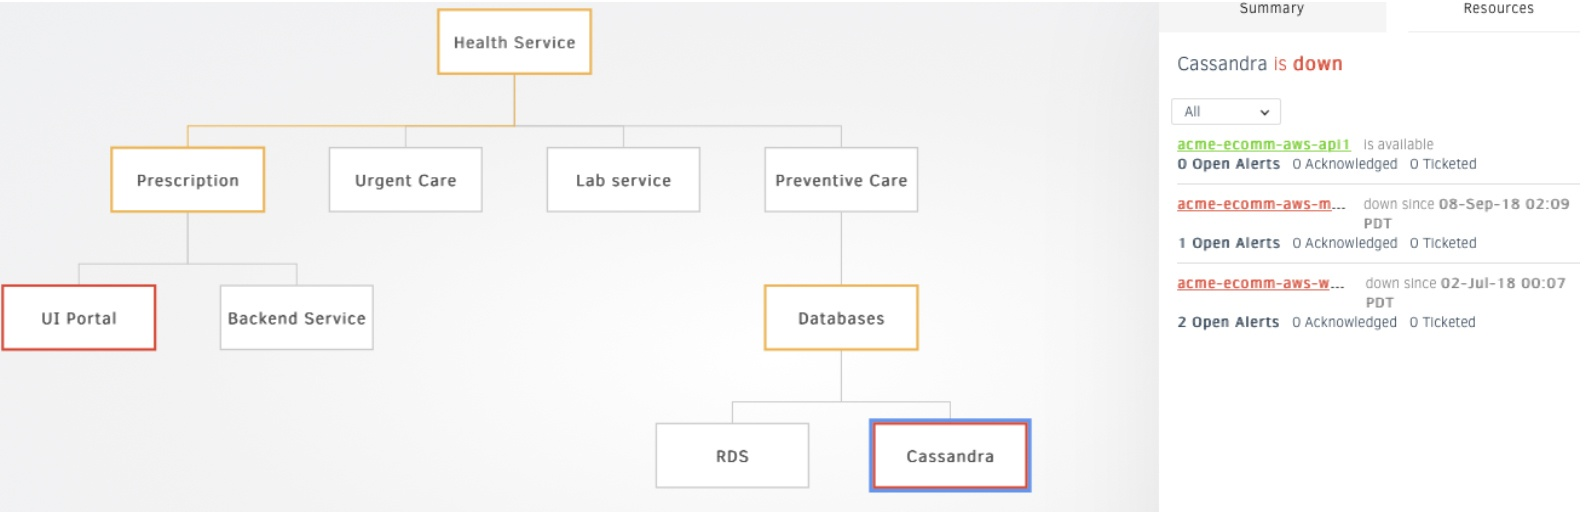 Business-Service-Maps